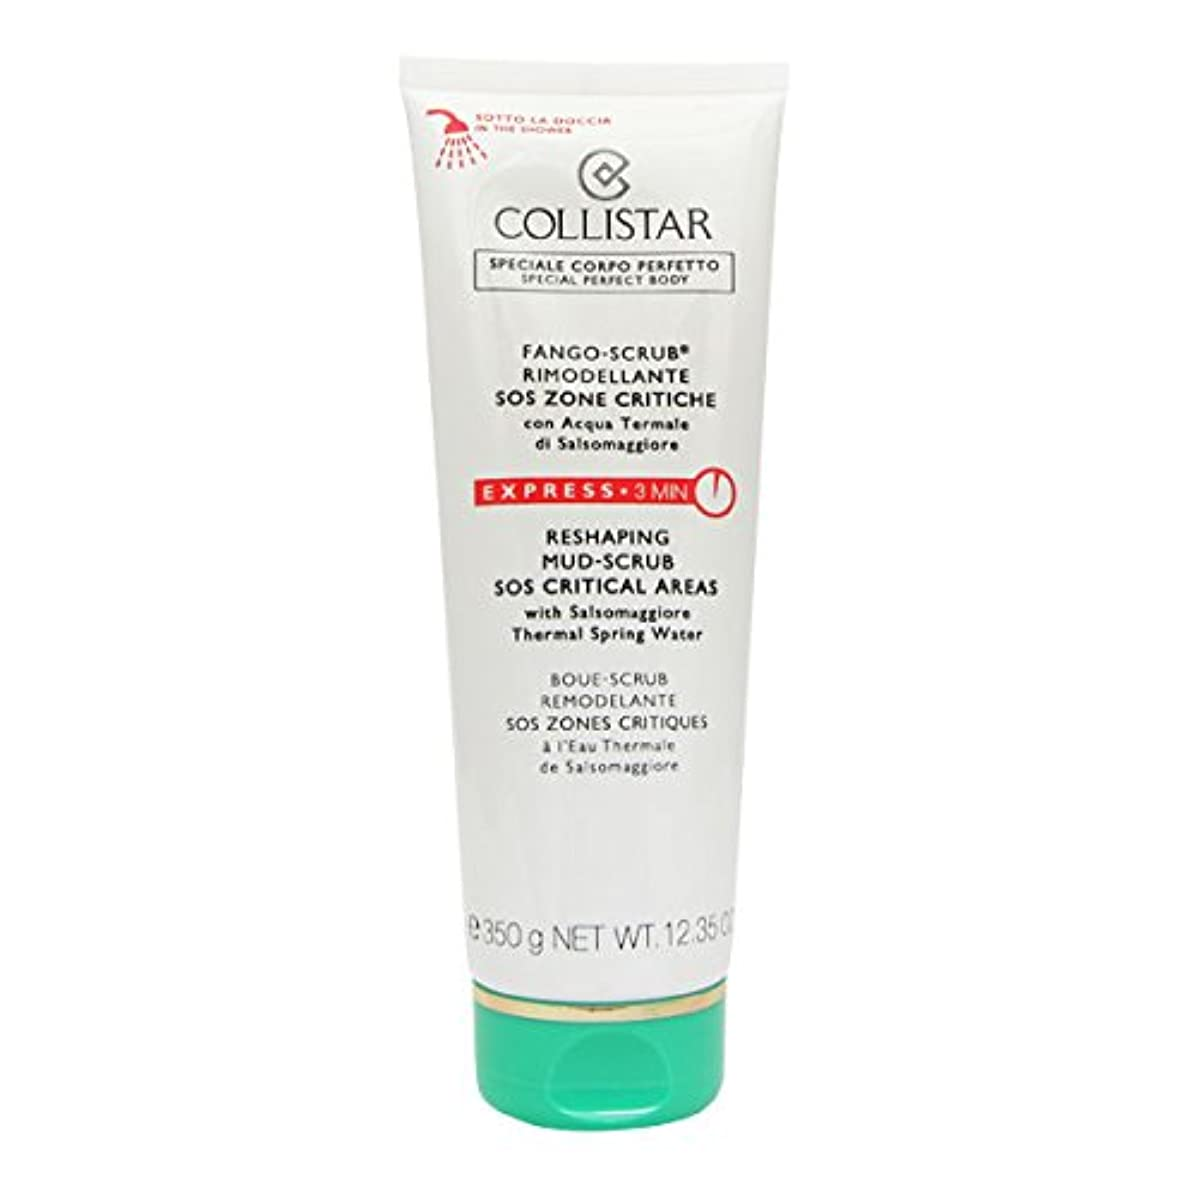 解釈的出演者四分円Collistar Reshaping Mud-scrub Sos Critical Areas 350g [並行輸入品]